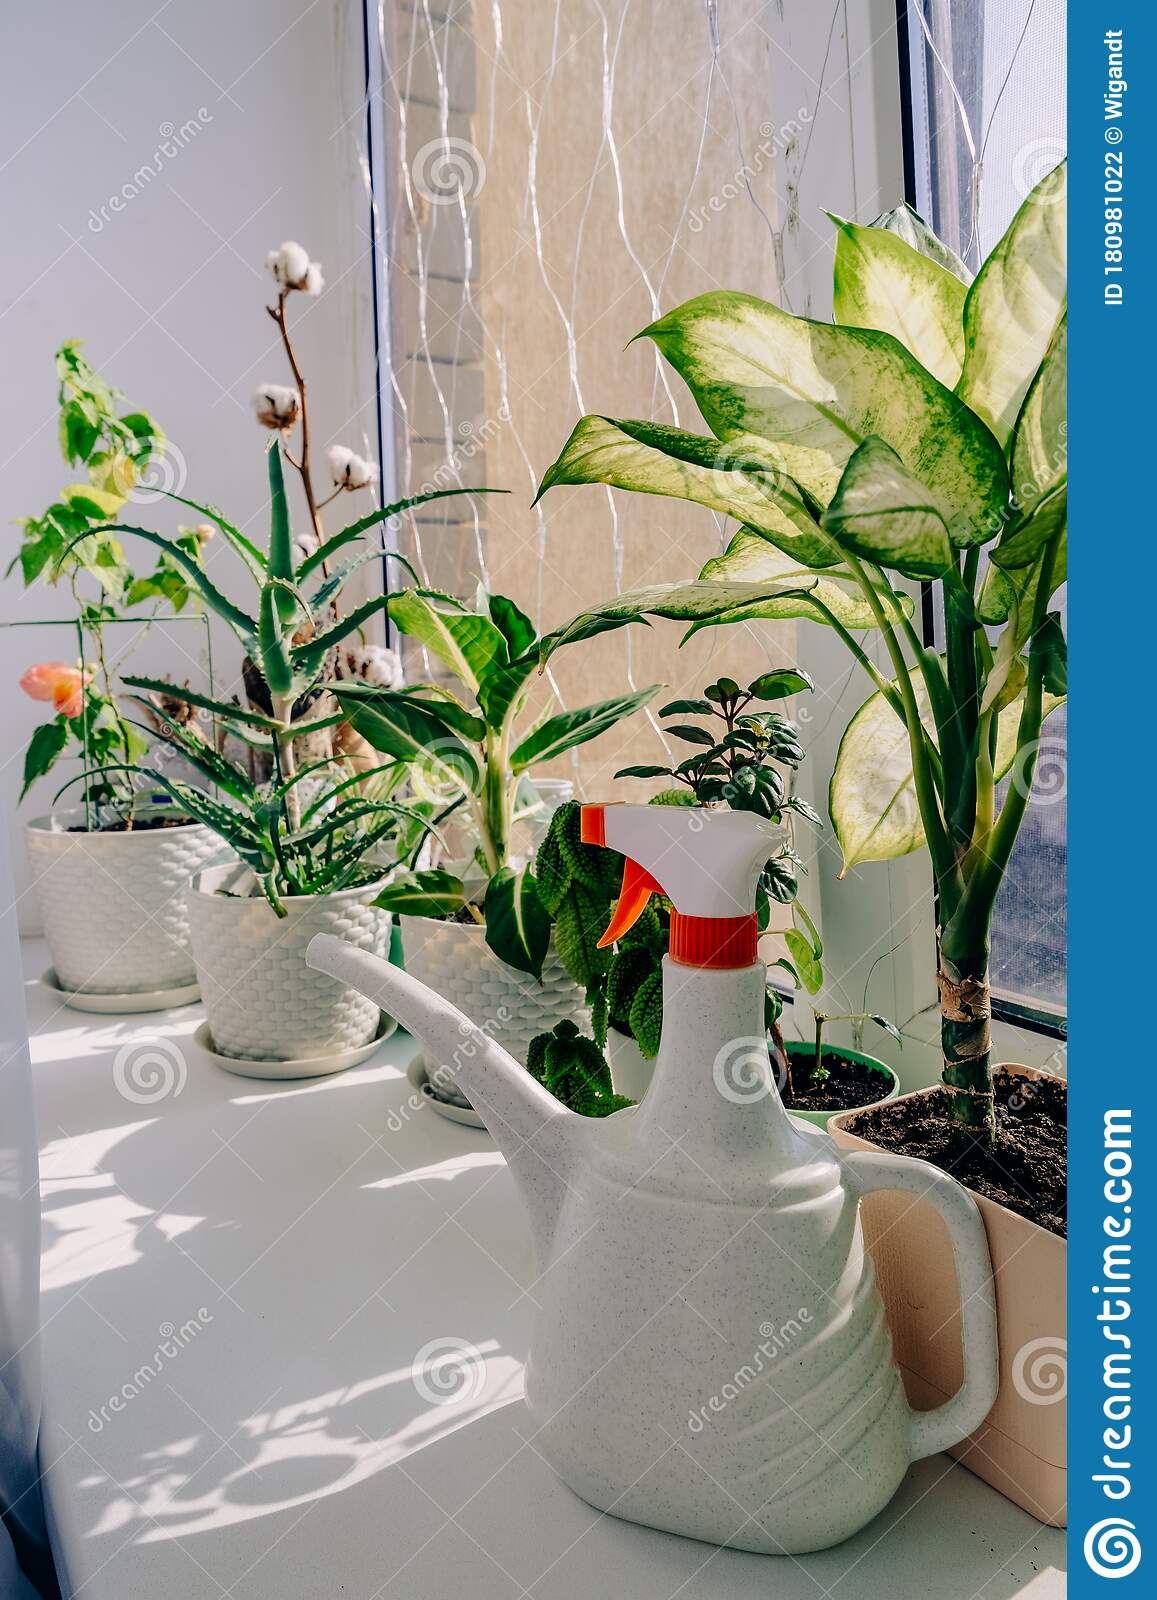 4 598 Apartment Indoor Plants Photos Free Royalty Free Stock Photos From Dreamstime